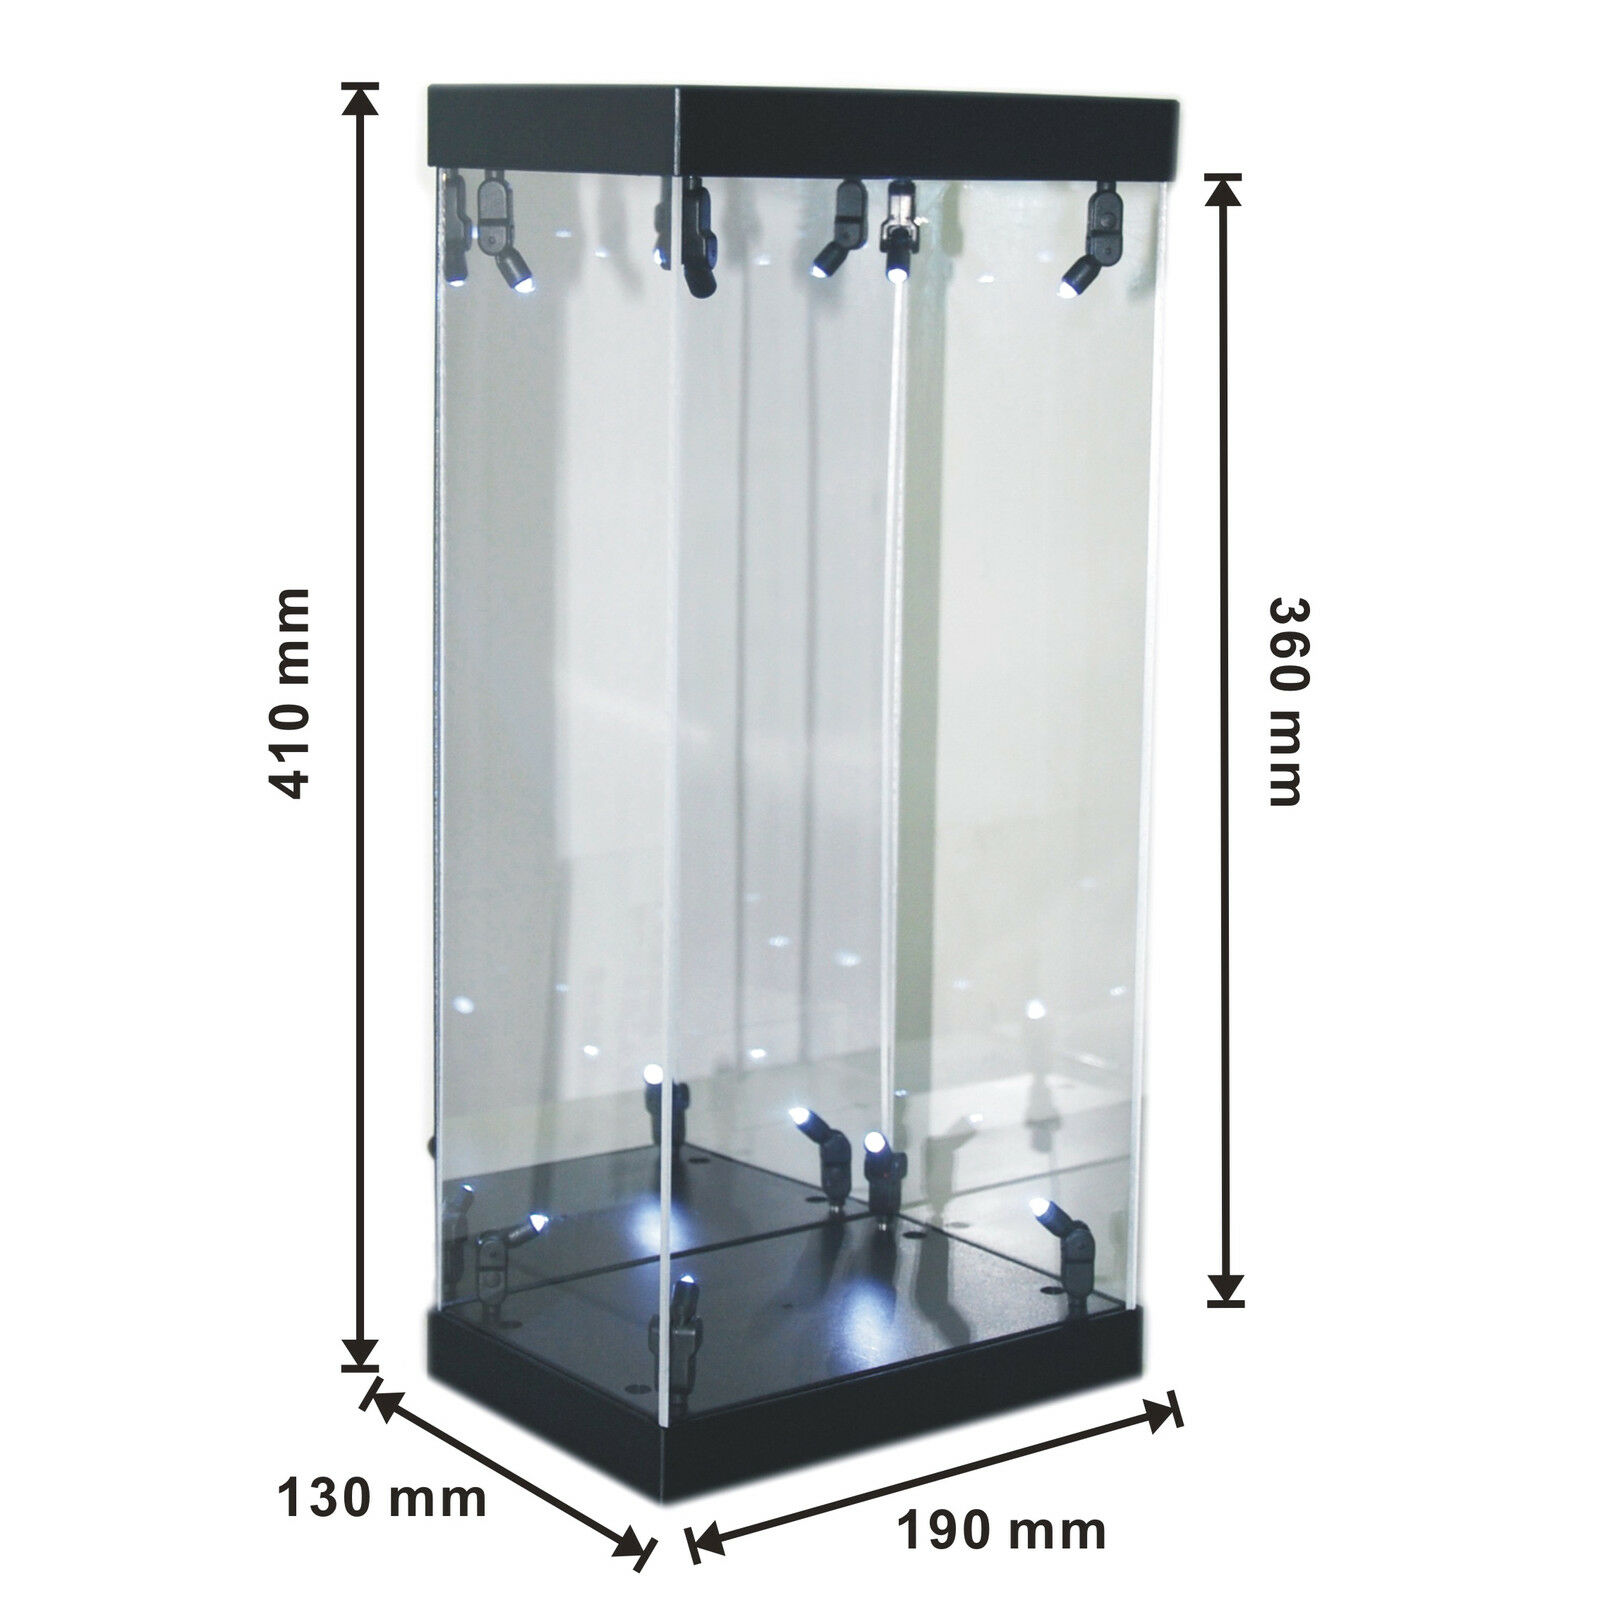 Acrylic Display Case Light Box for 12  1 6th Scale Star Wars Stormtrooper Figure